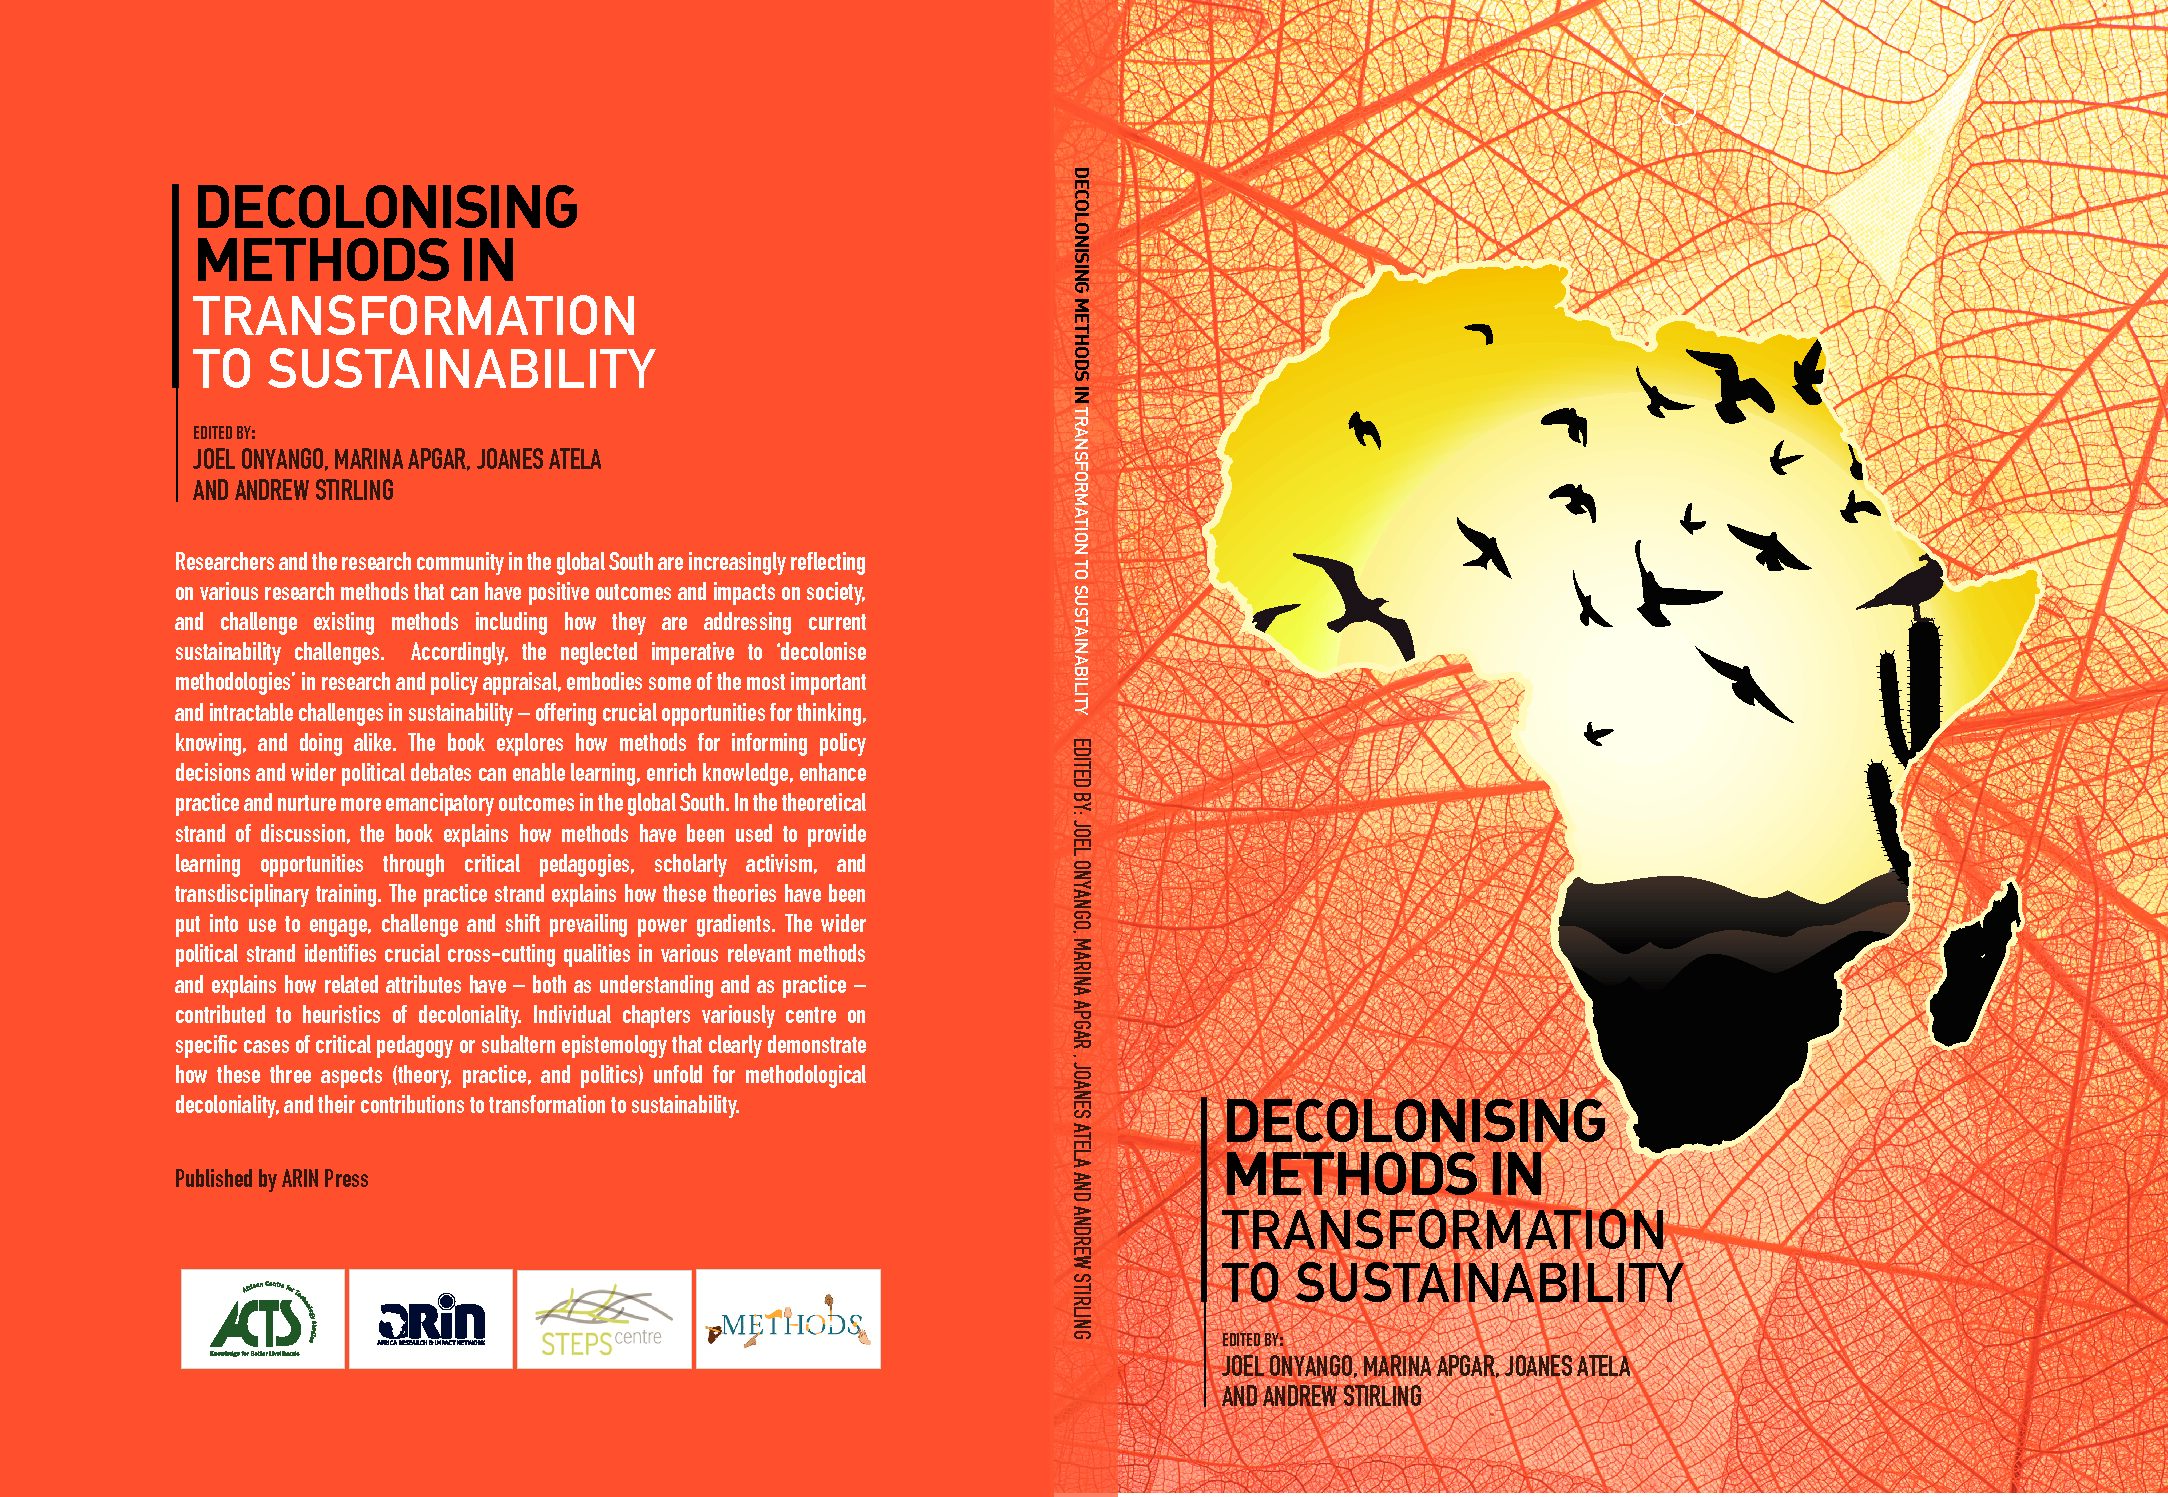 Decolonising Methodologies To Sustainability In The Global South